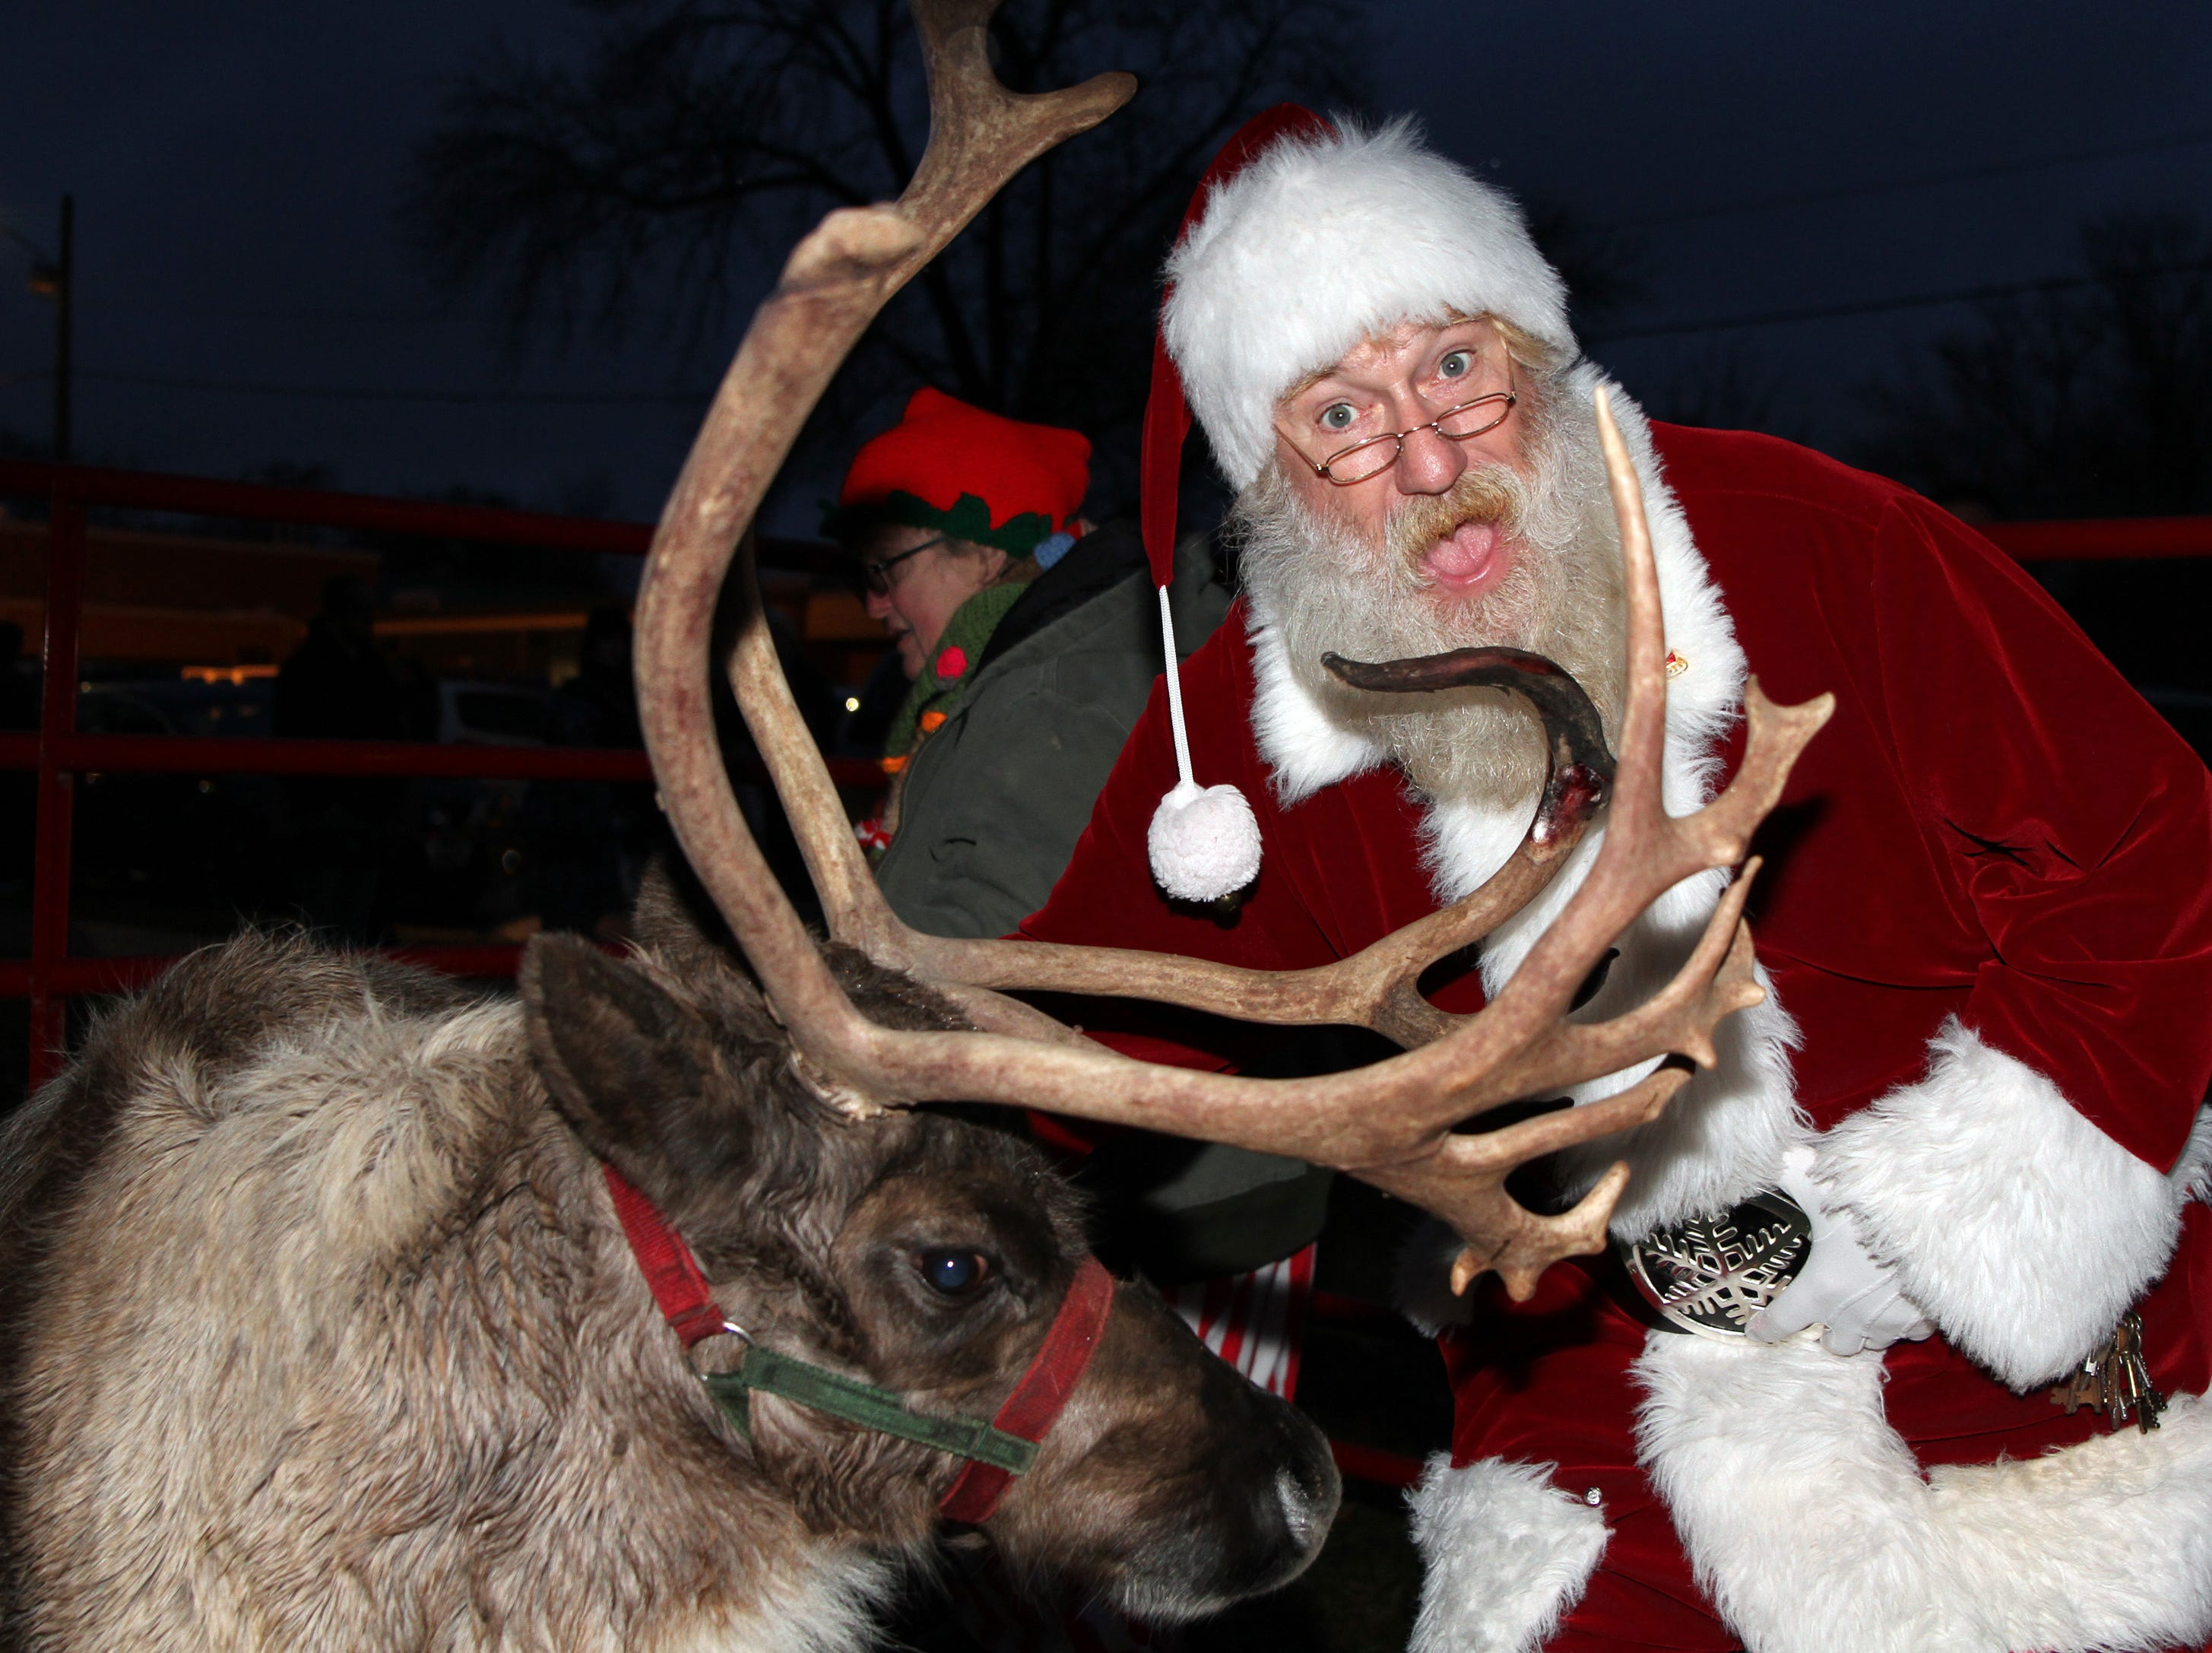 Santa checks on Rudy the Reindeer during UCAN's  third annual Light Up Urbandale on Sunday, Dec. 2, 2018 at Lions Park in Urbandale. Holiday festivities included a visit from Santa, crafts, goodies, official tree lighting ceremony, live reindeer and entertainment.